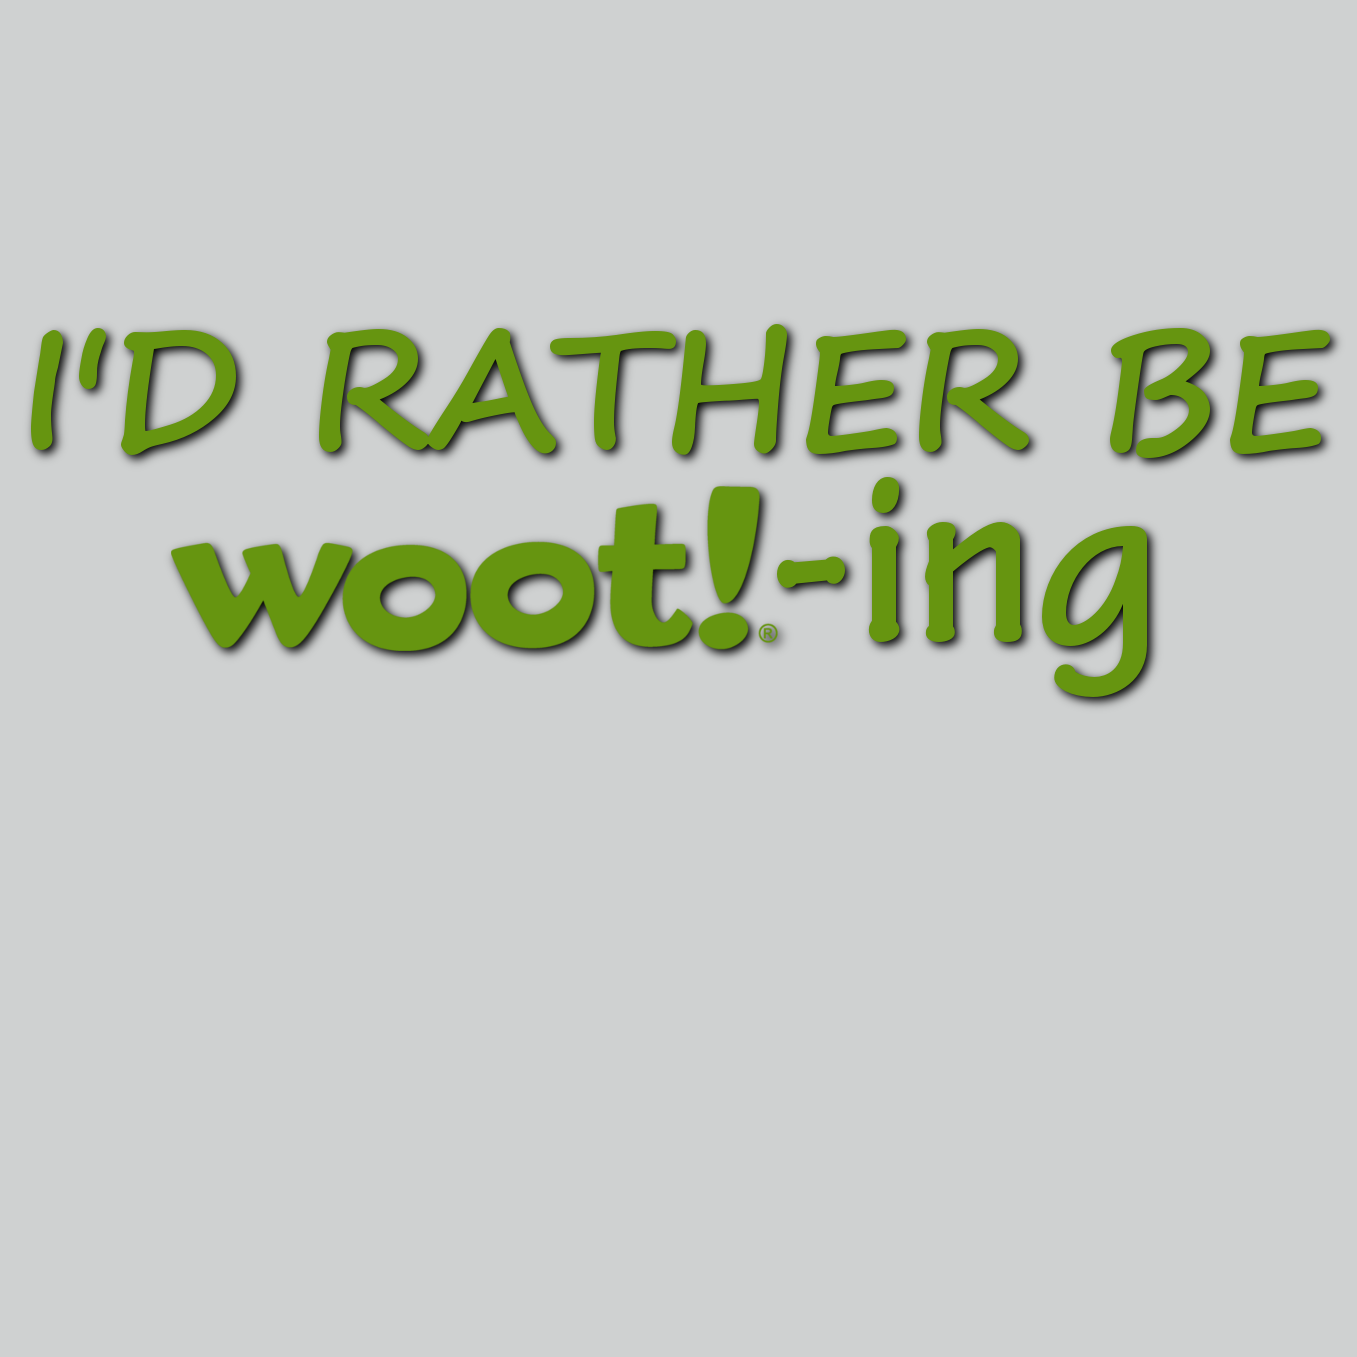 I'd rather be wooting